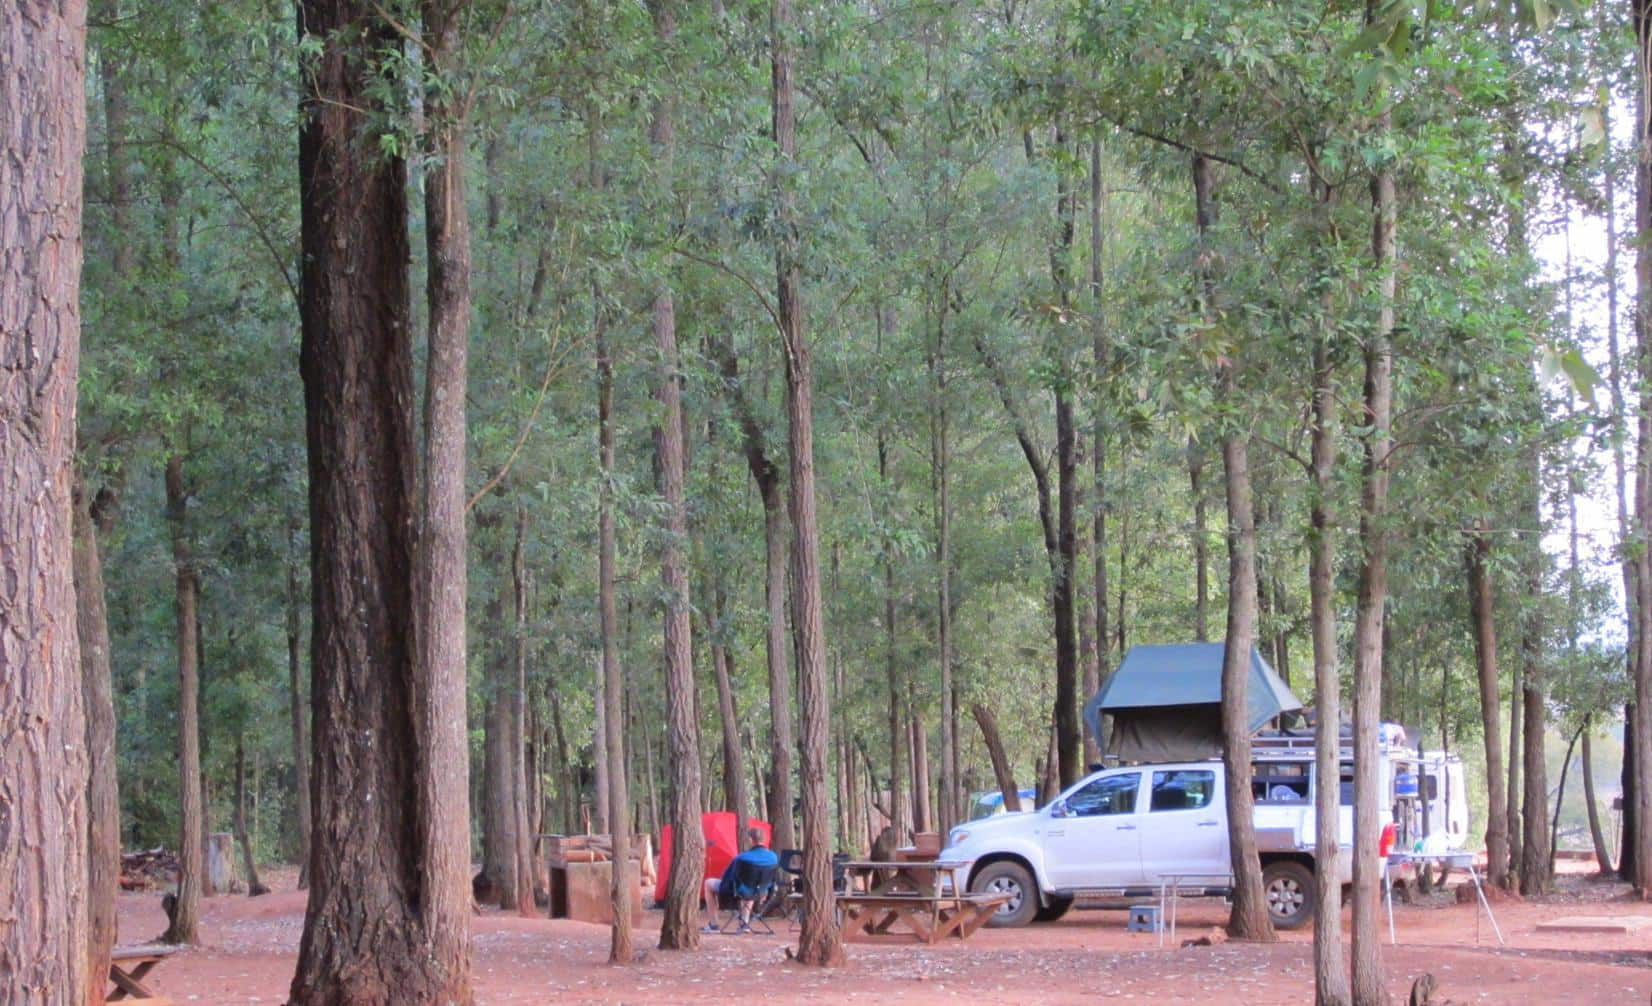 Camping in a gumtree forest.